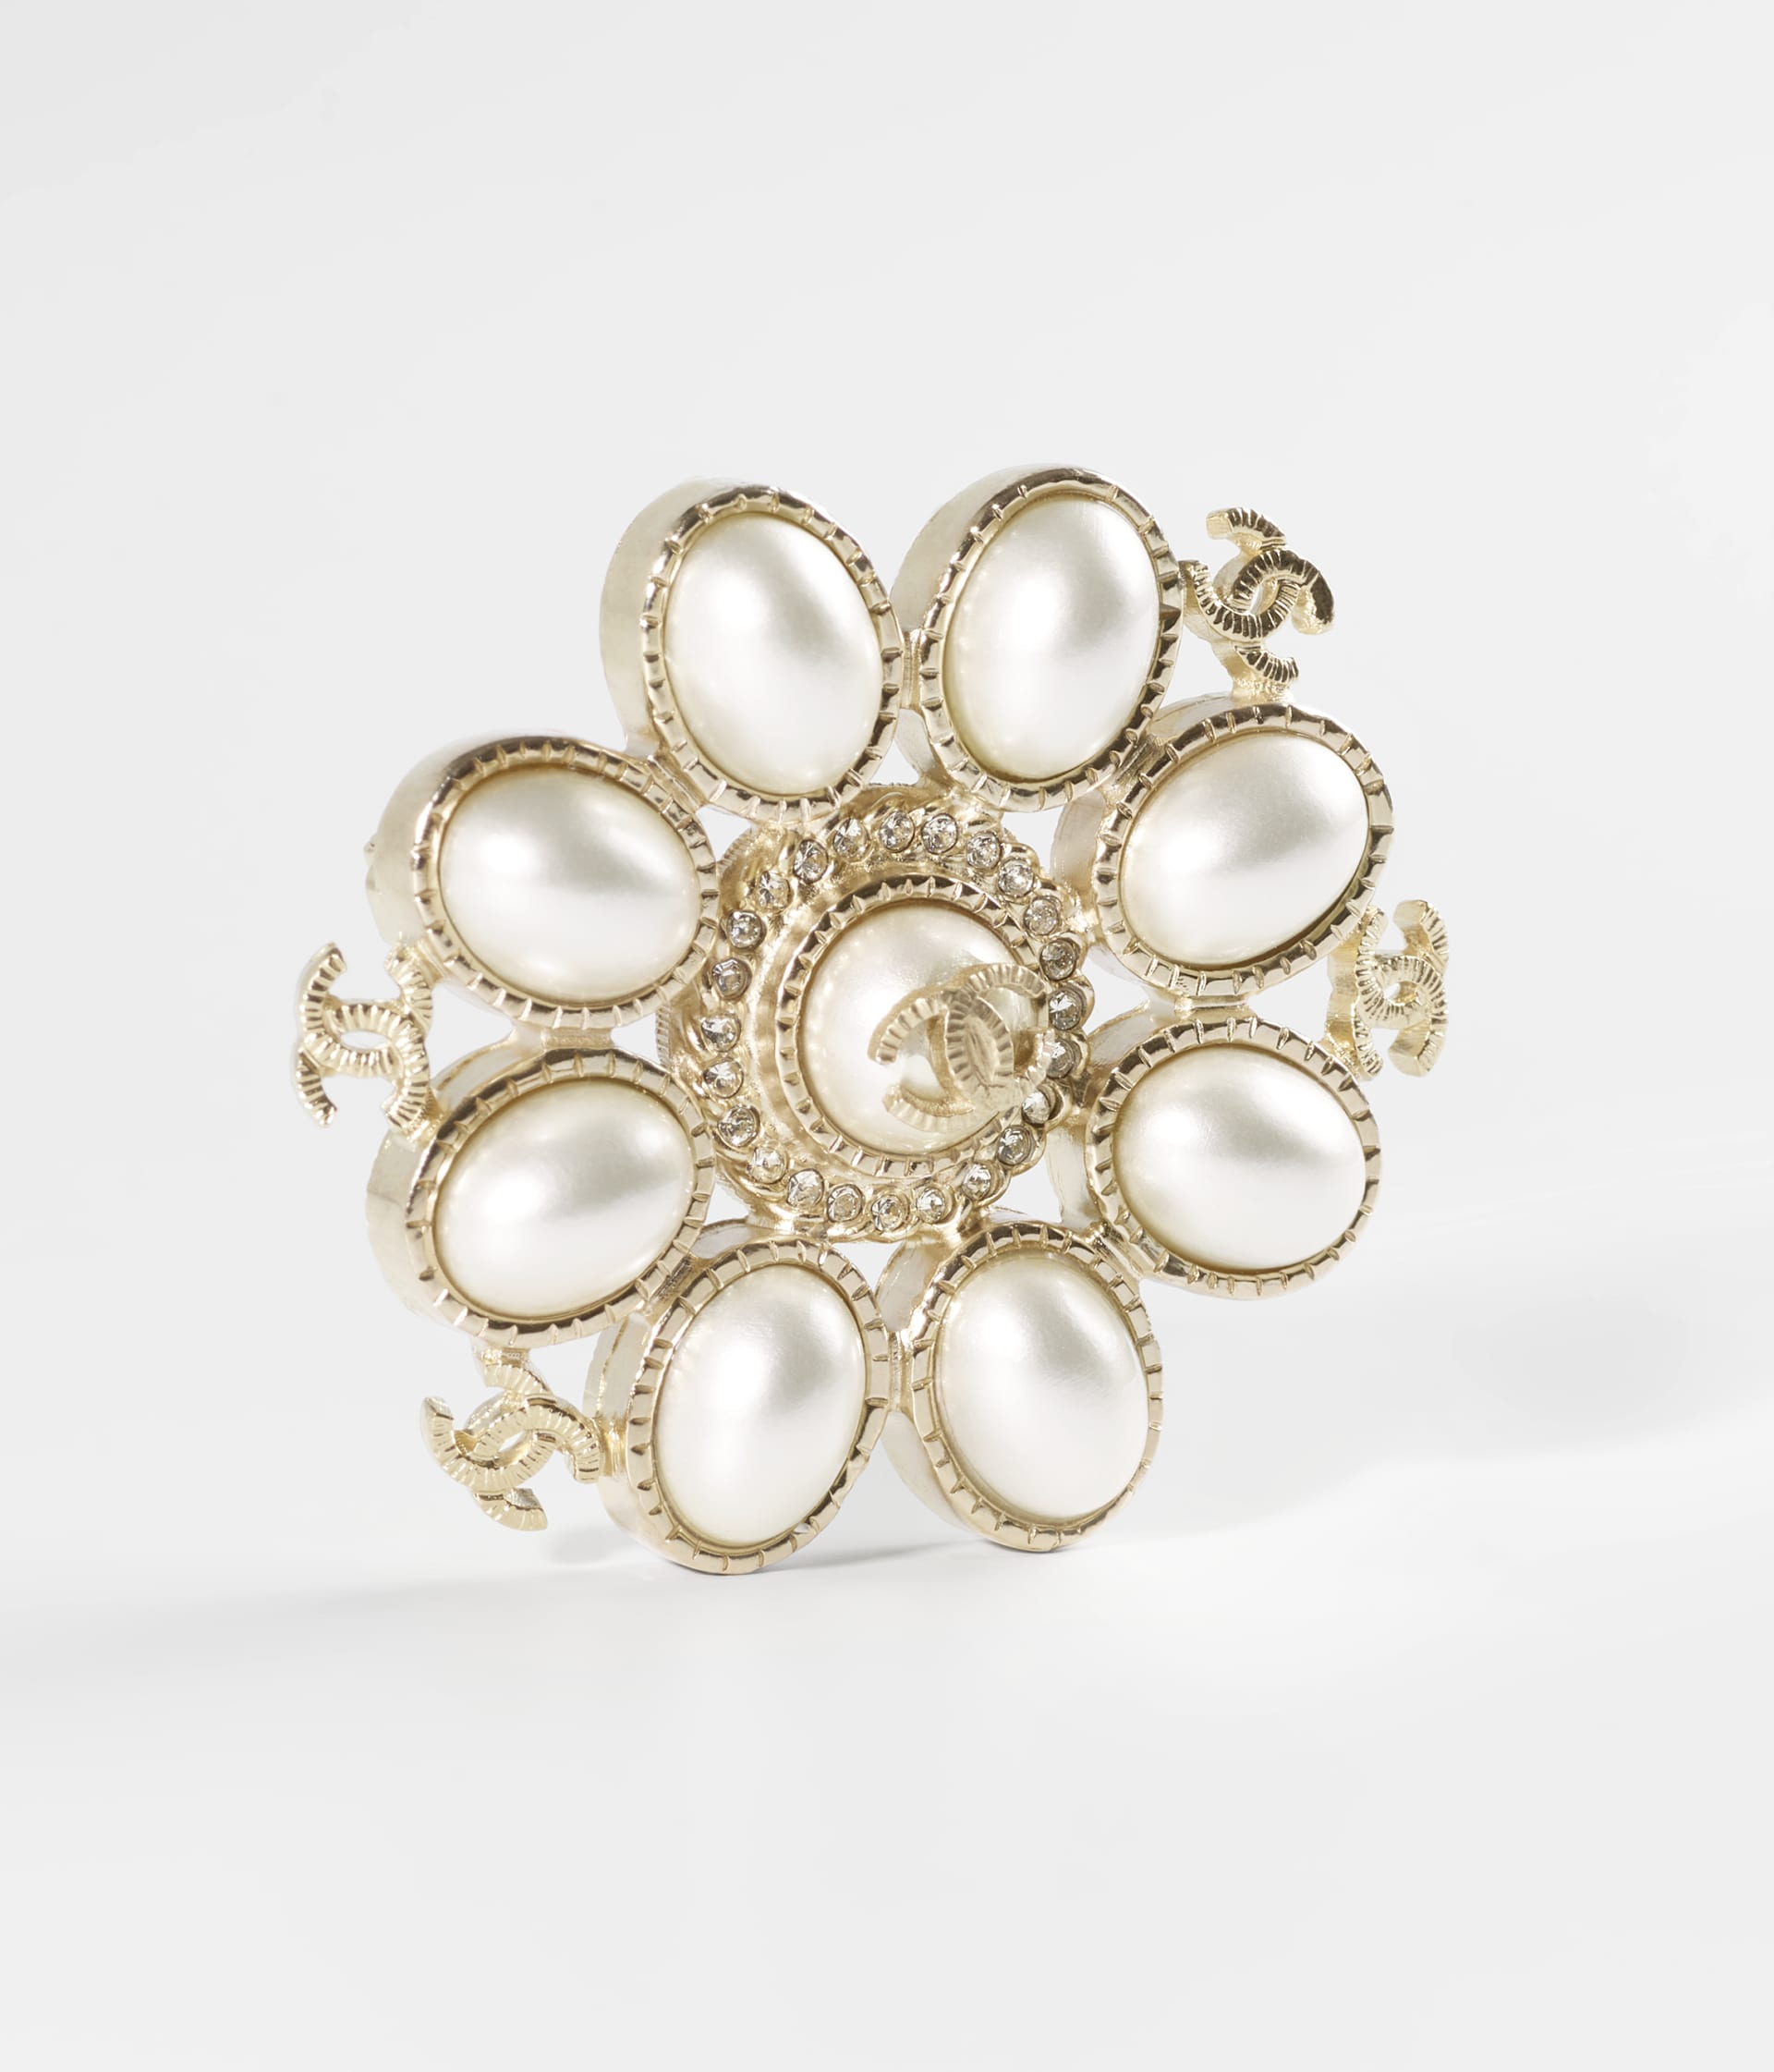 image 2 - Brooch - Metal, Resin & Strass - Gold, Pearly White & Crystal